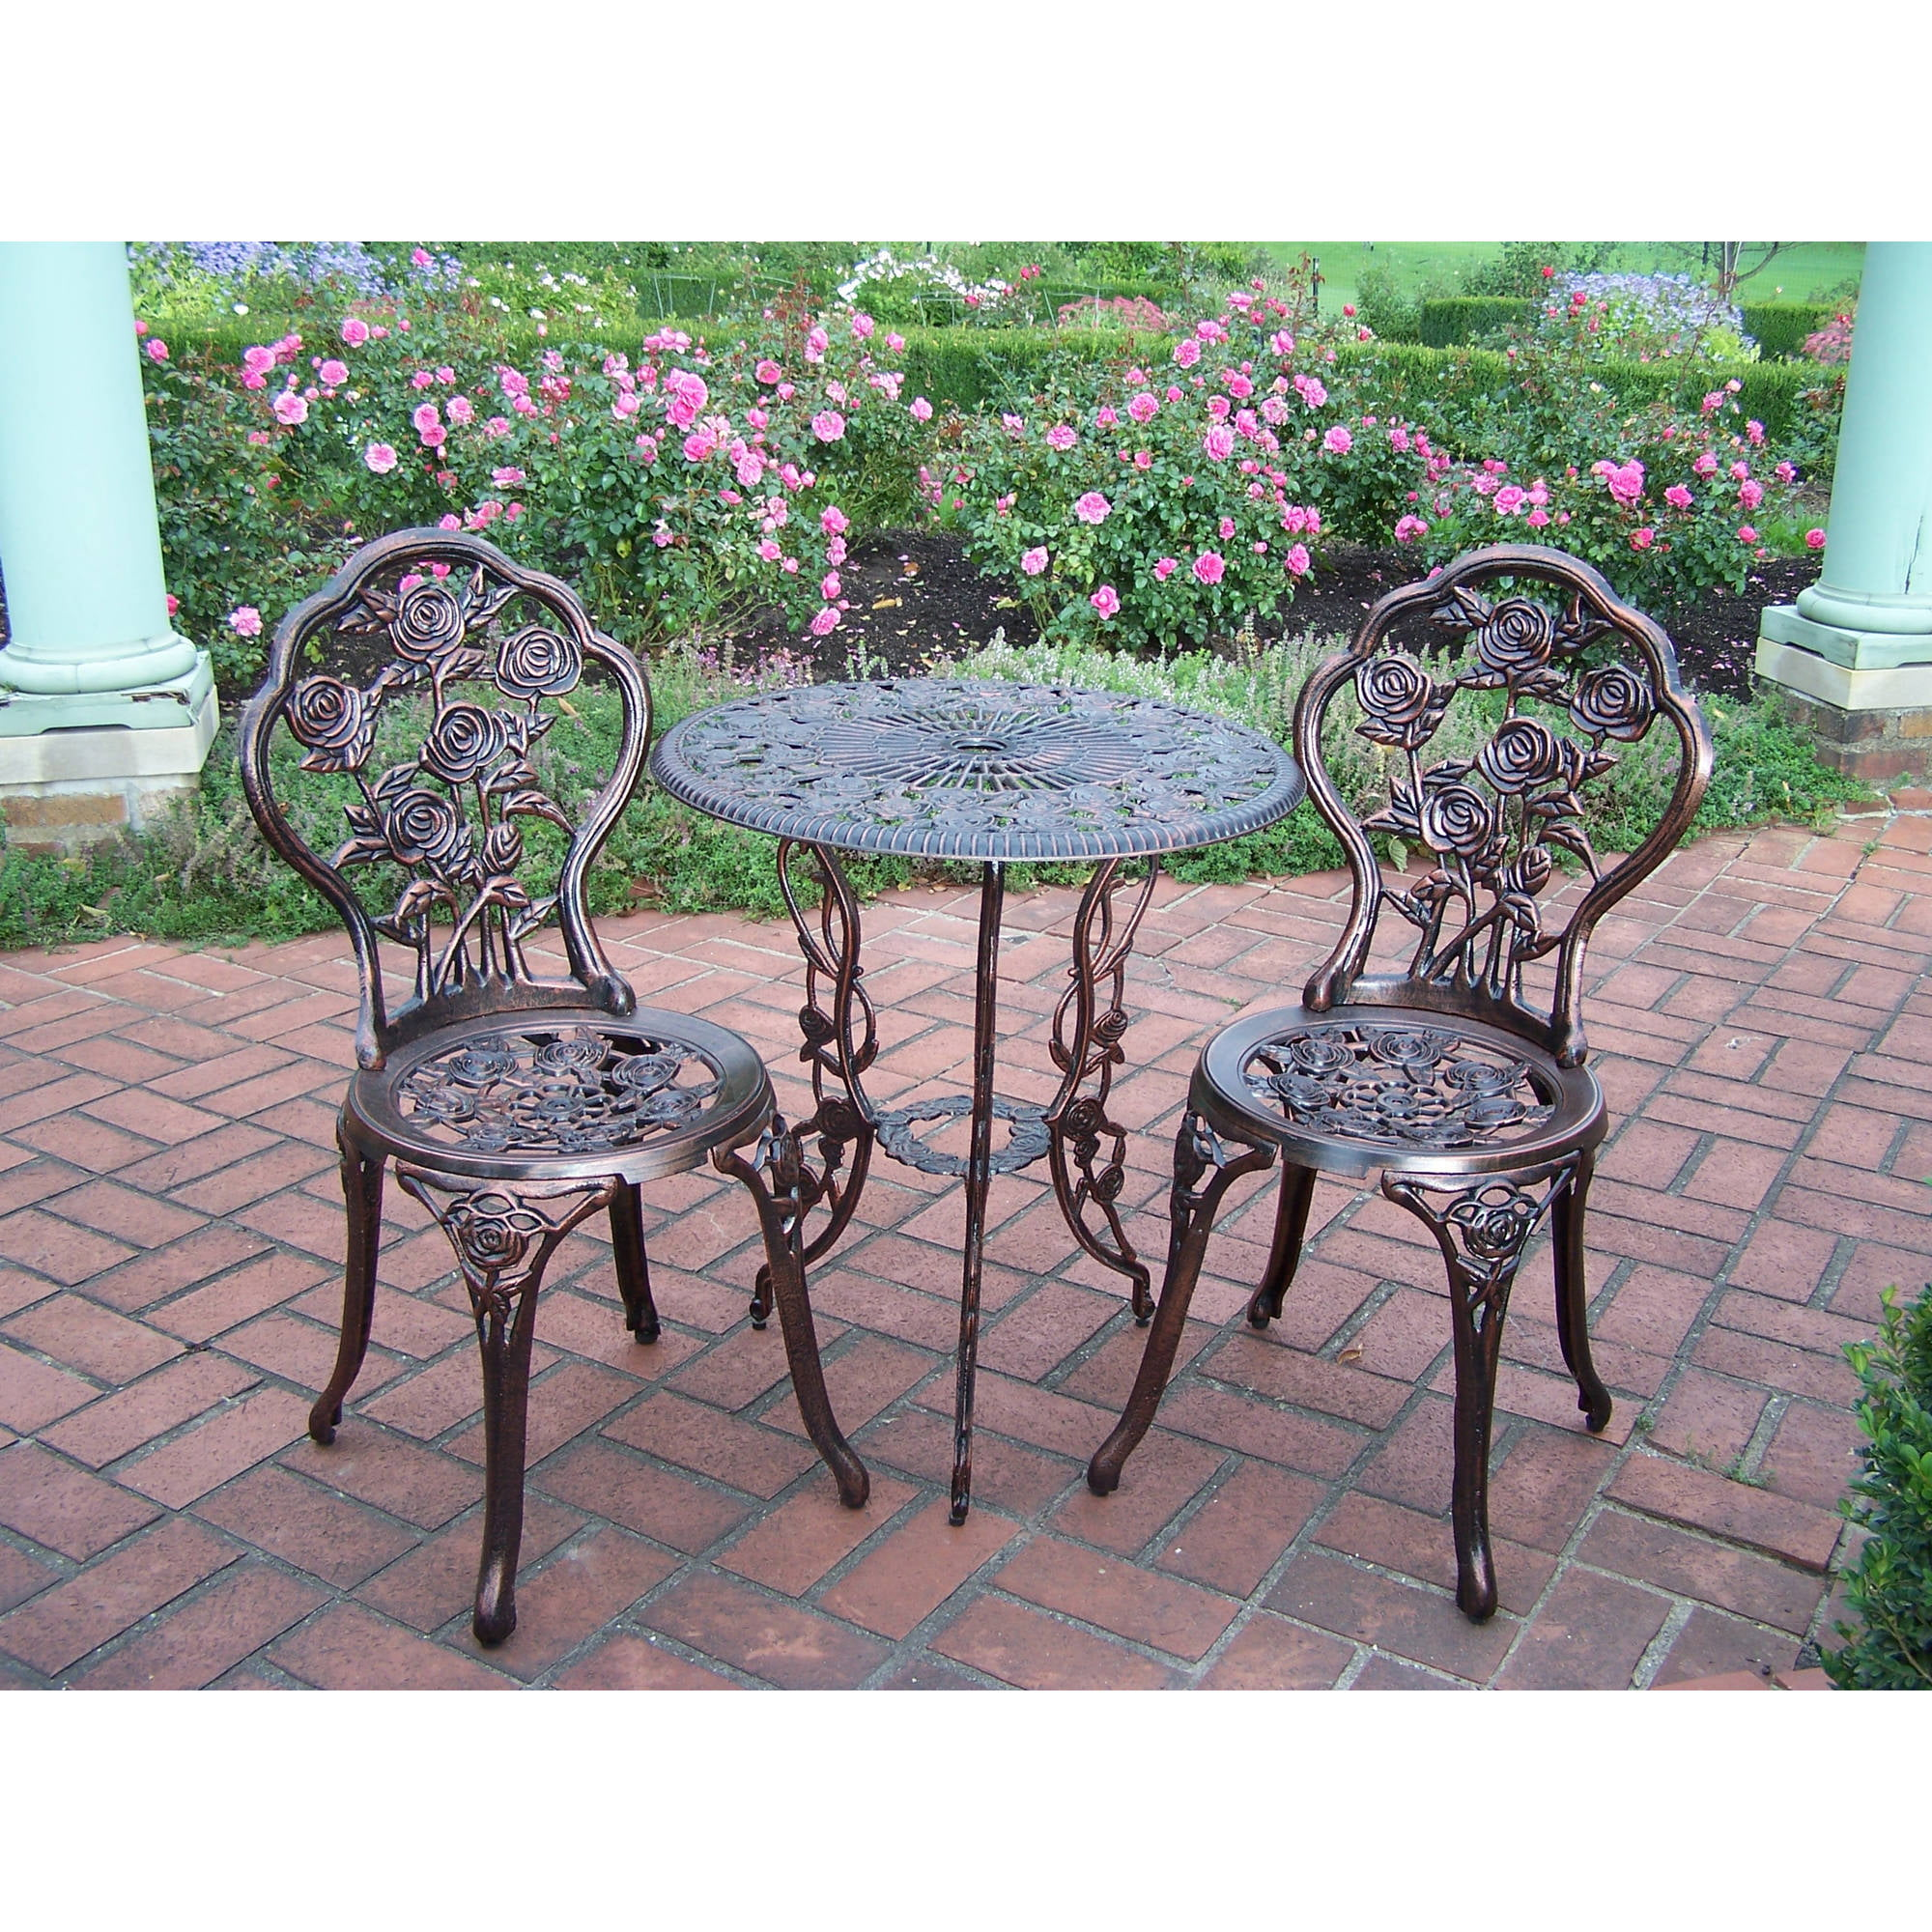 aluminum collection luxury the stationary patio set amalia dining with big chairs furniture person cast